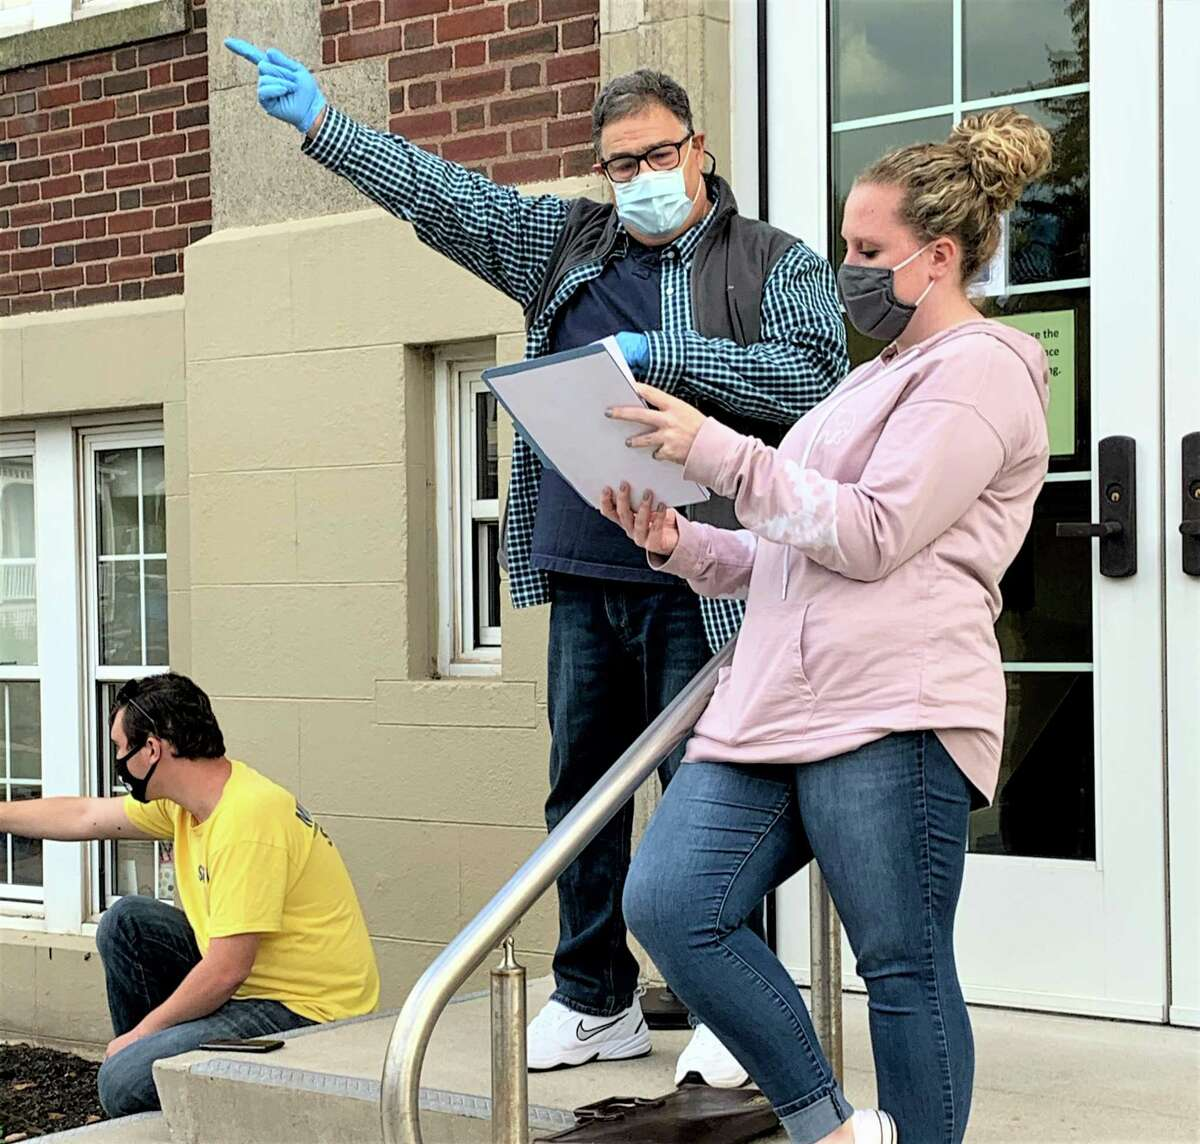 """Middlletown High School Unified Theater students practice outside for """"10 Years of Unified,"""" which begins its run at the end of October. The teens, together in small cohorts, rehearsed outside this year due to the pandemic. They're shown here at the Middletown Senior Center."""